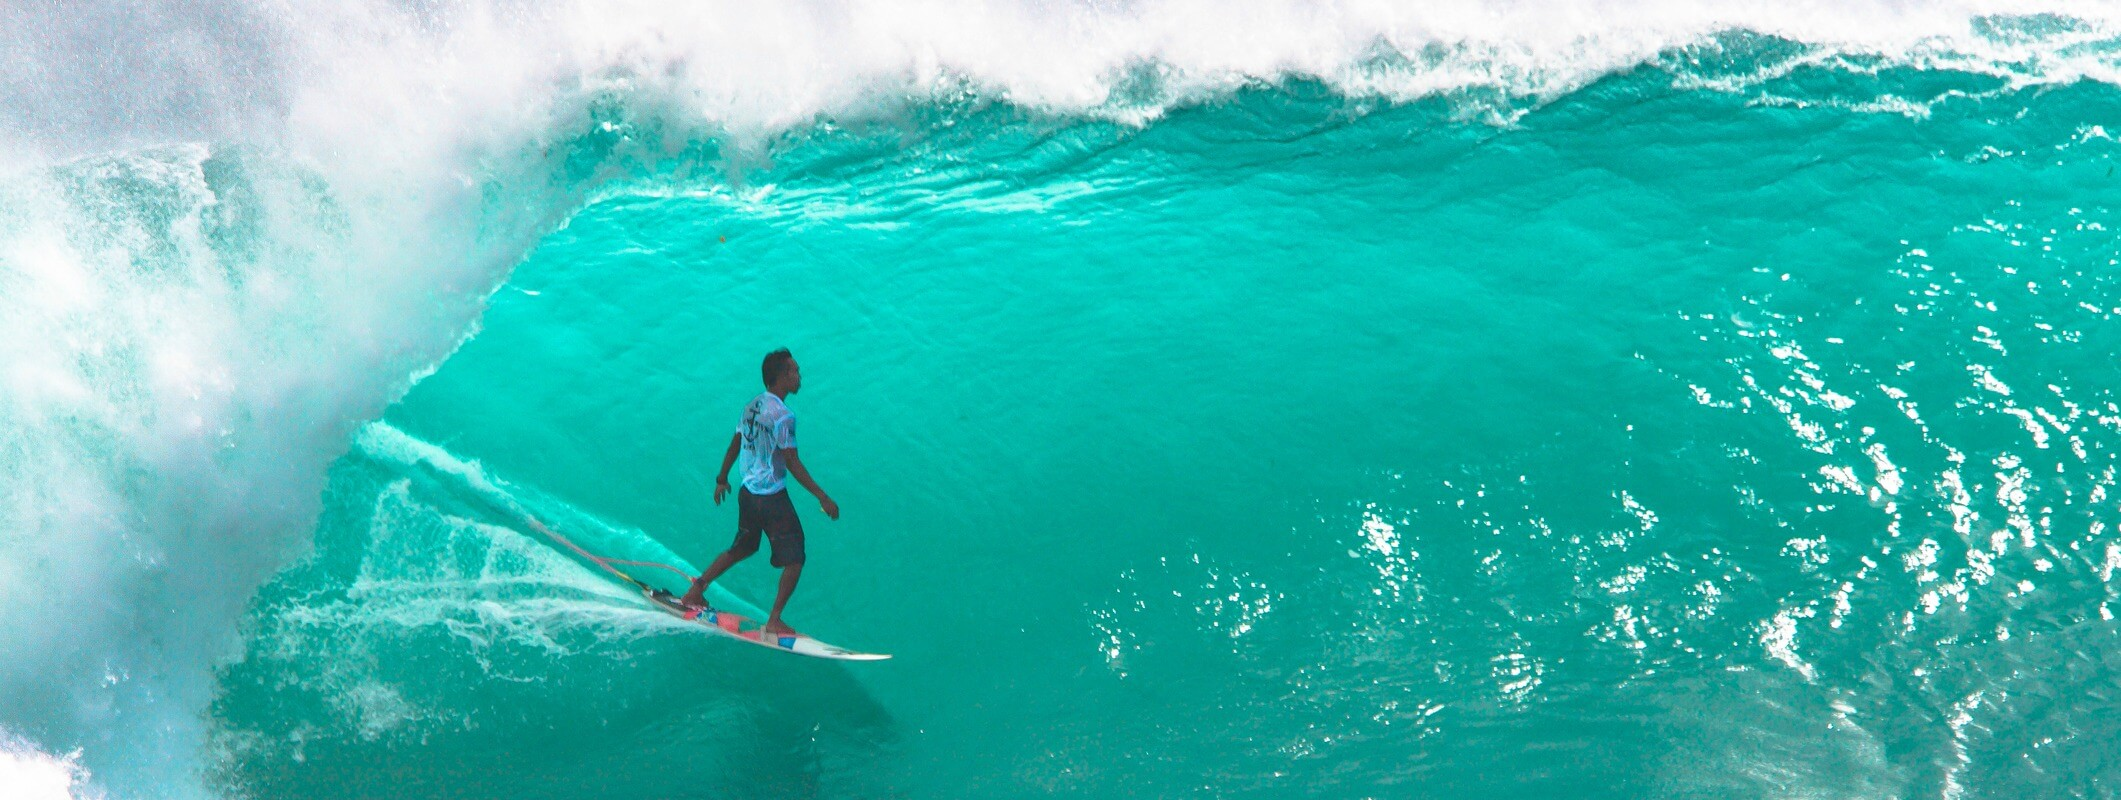 Best beaches to surf in Bali